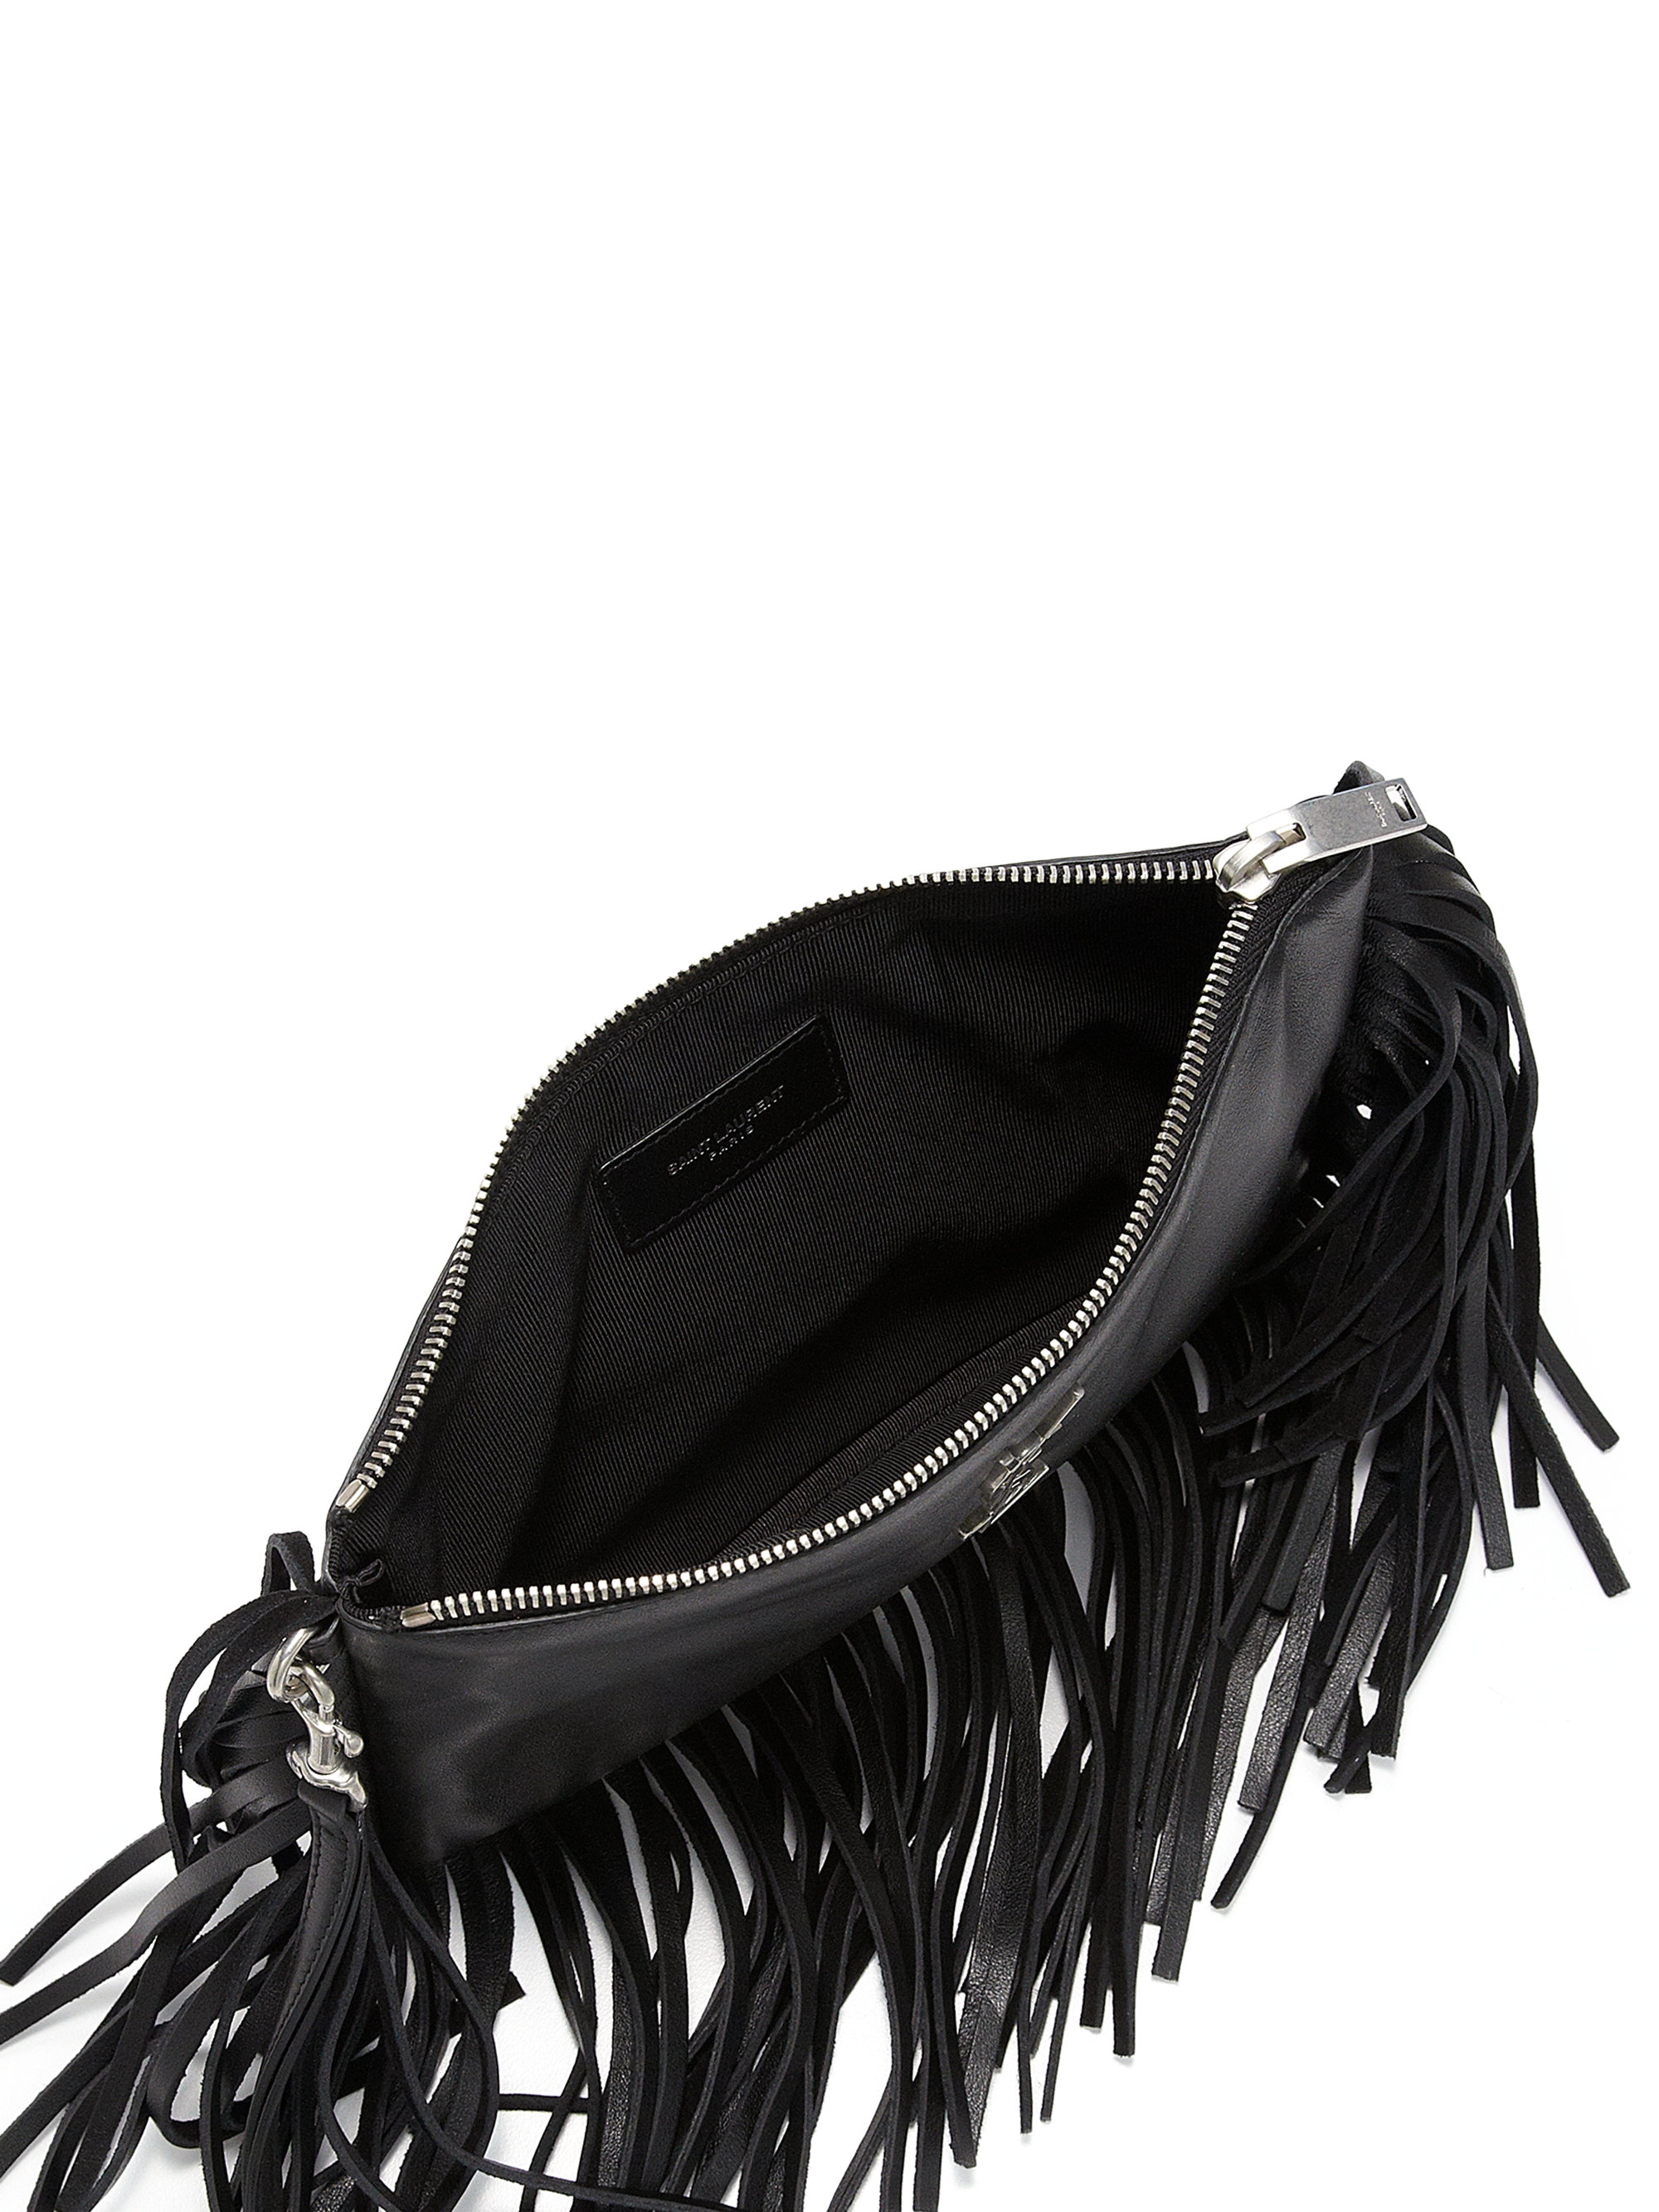 ysl classic baby duffle bag - monogram fringe beaded pouch, black